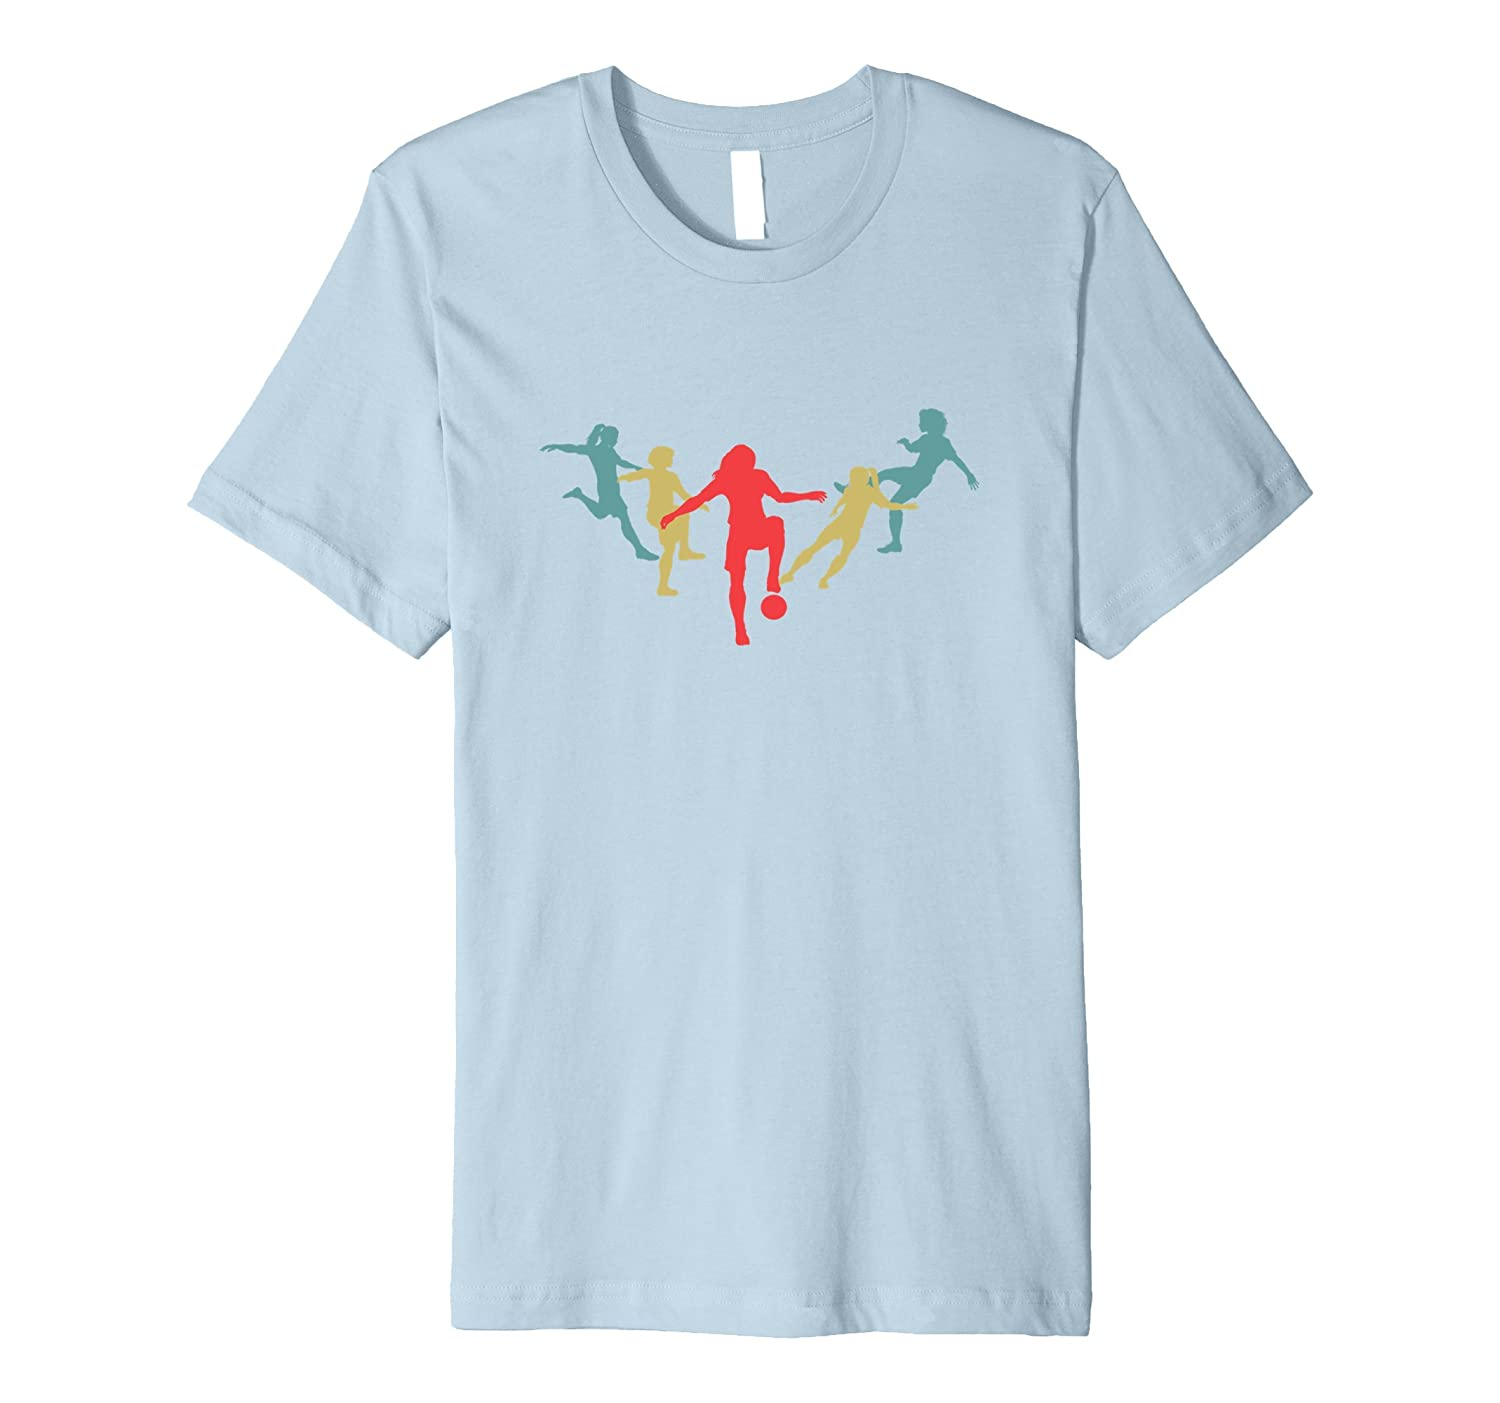 Soccer gift ideas for teens youth and girls premium t for Boys soccer t shirts